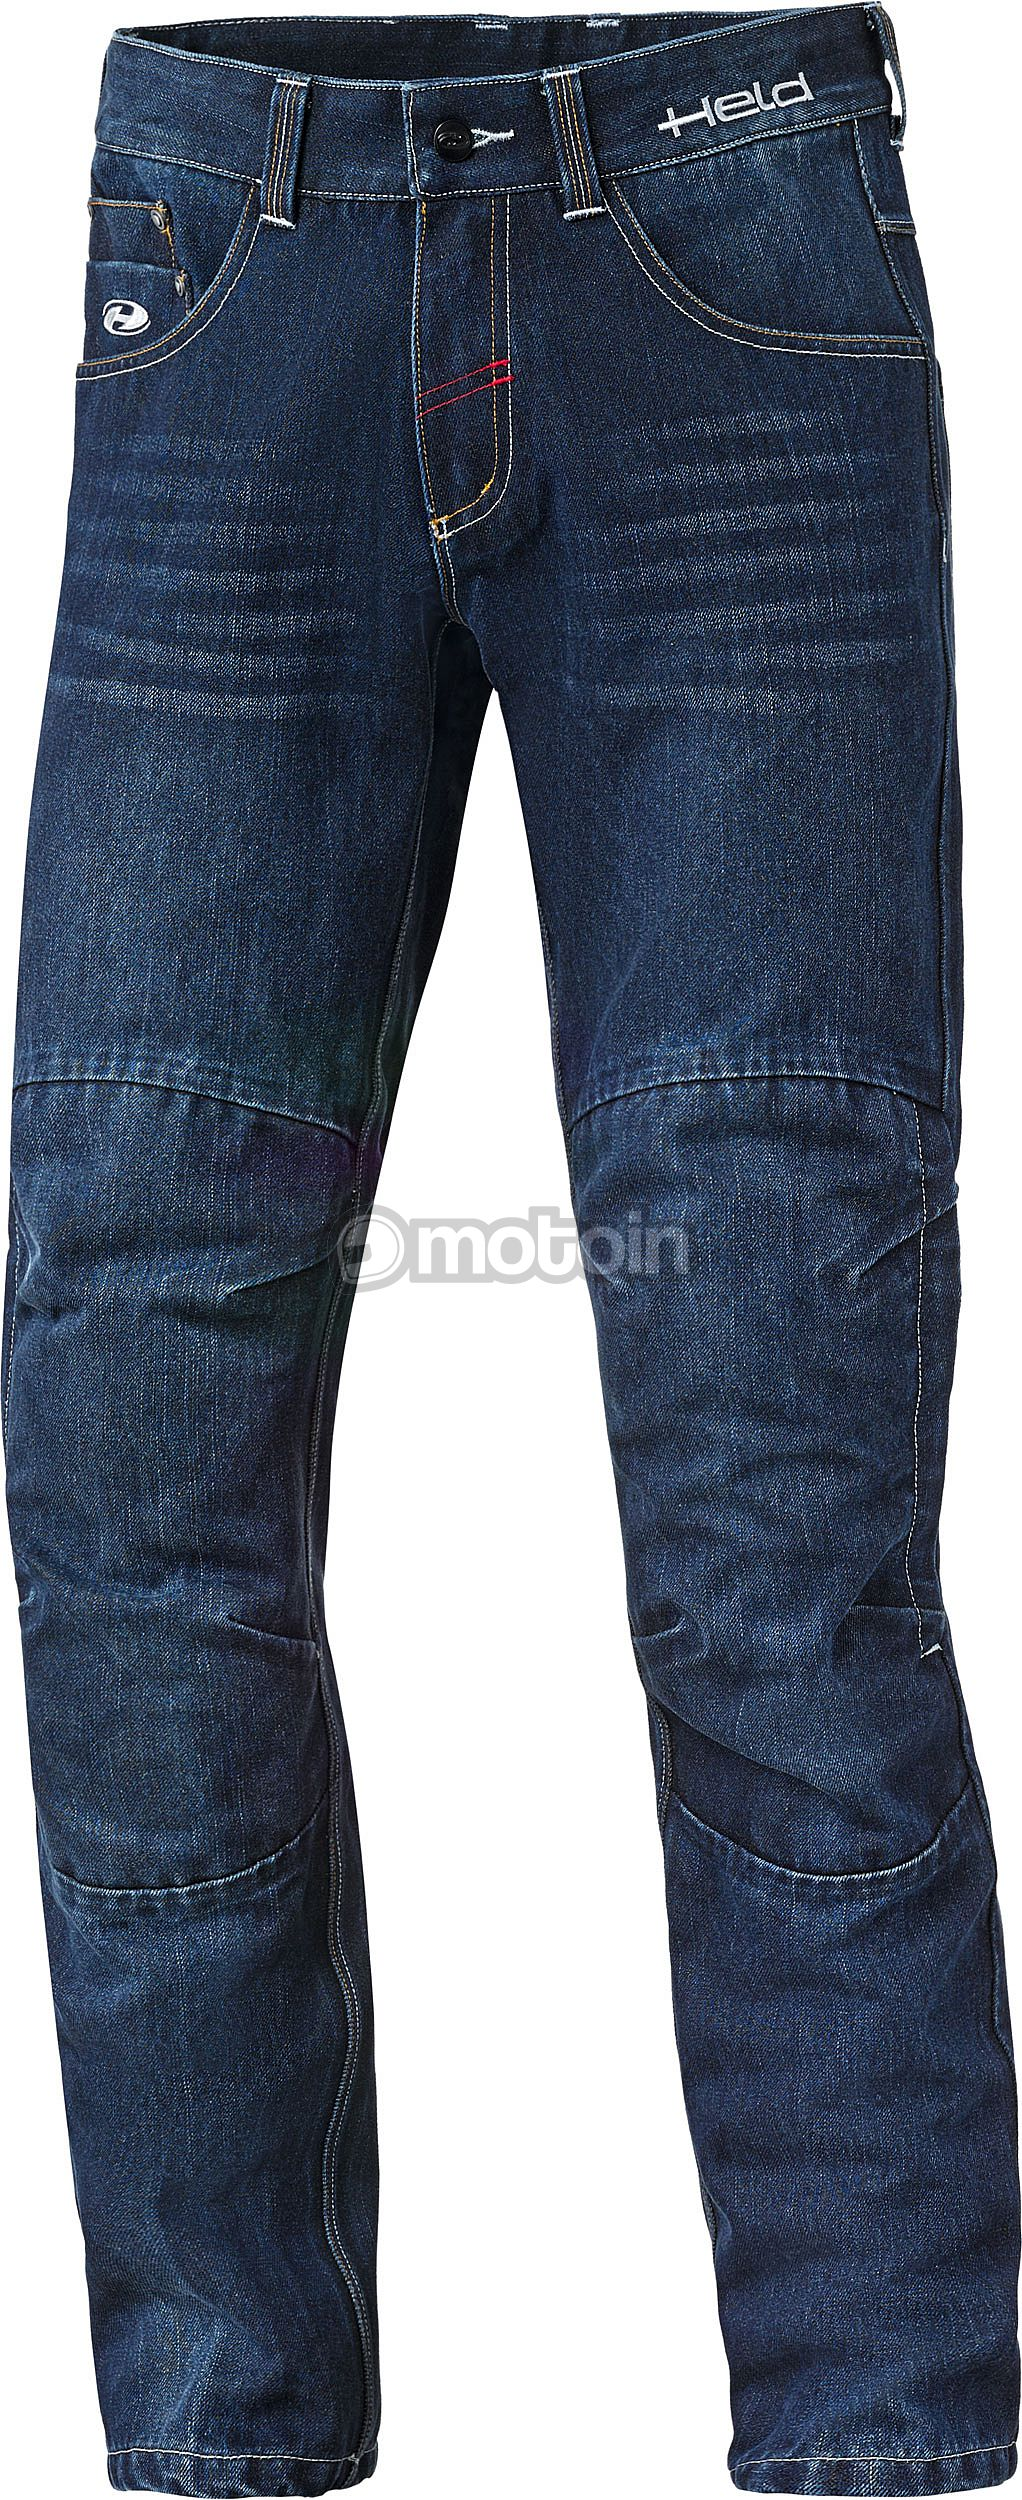 held barrier jeans wasserdicht